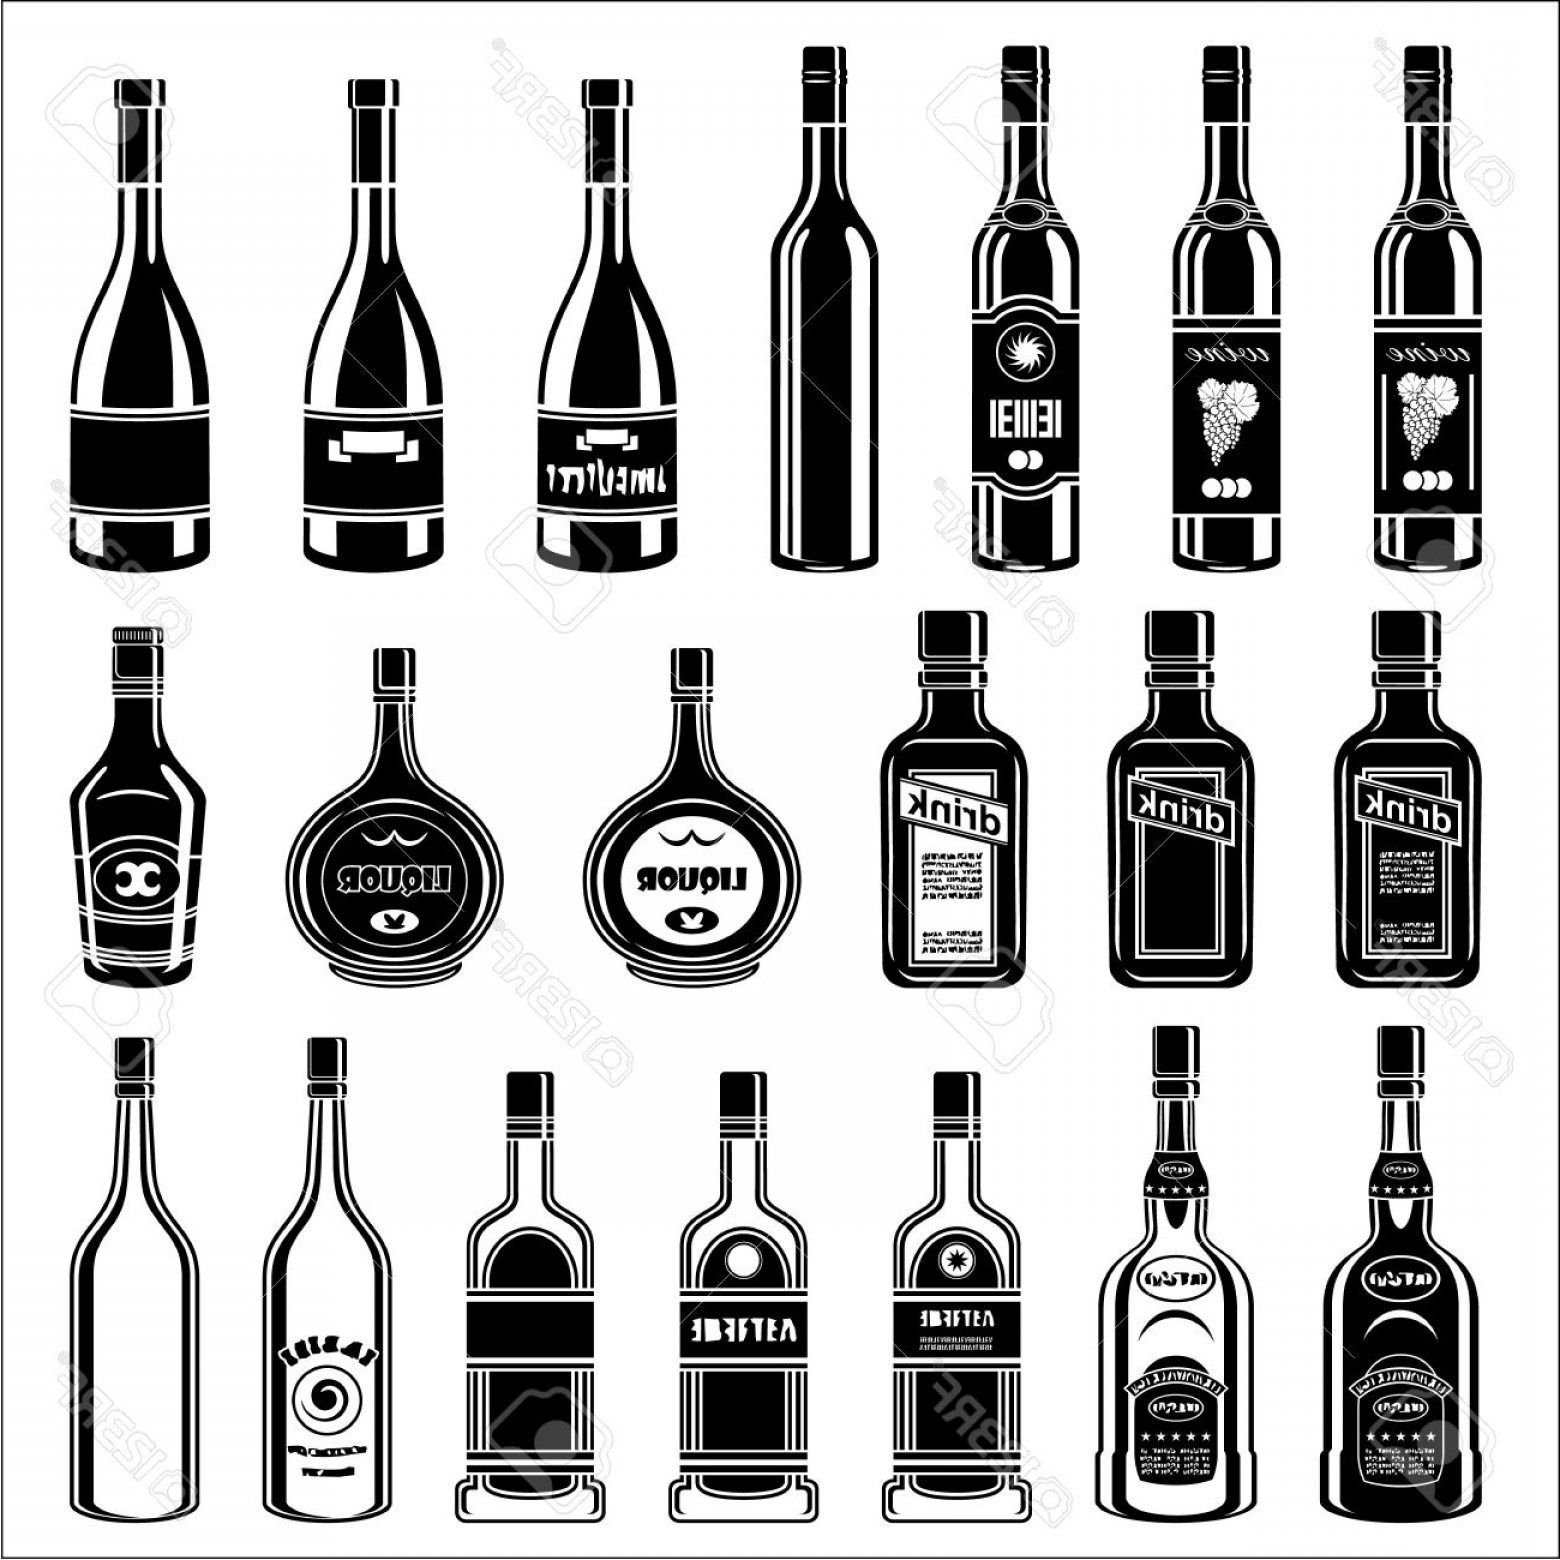 Booze Bottle Vector: Photostock Vector Set Of Alcohol Bottles Vector Illustration